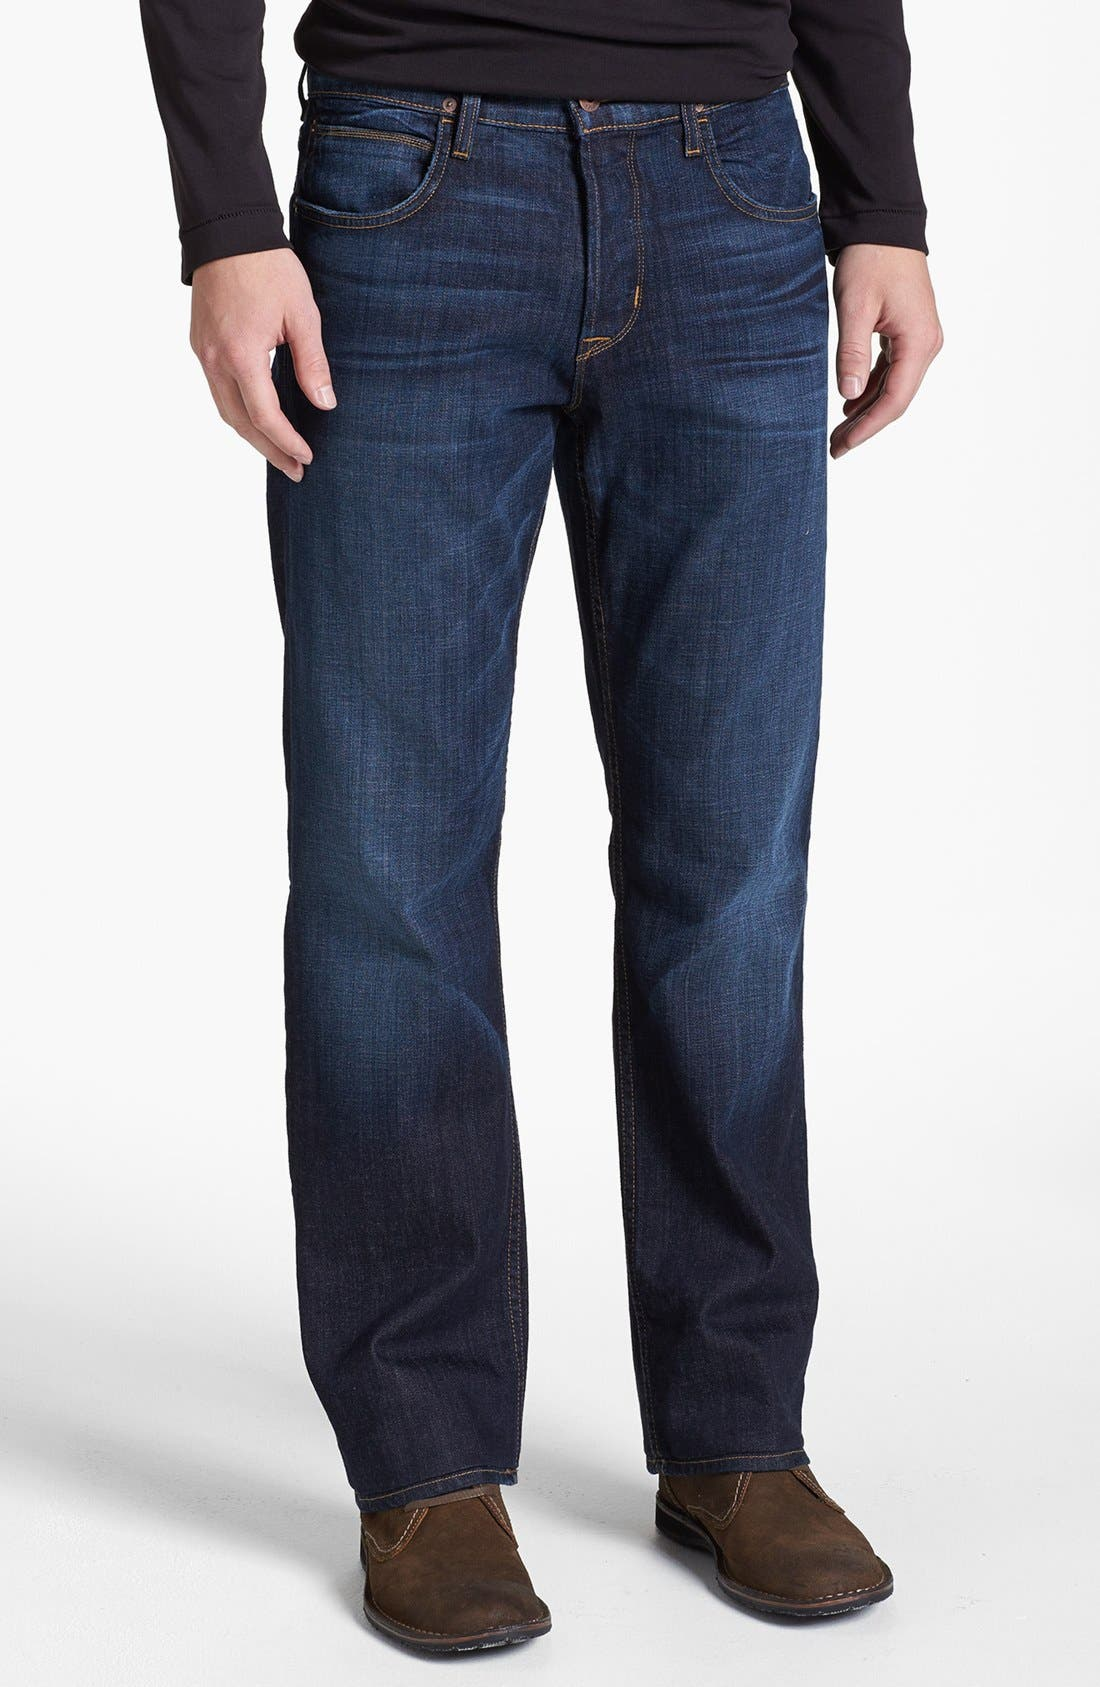 Alternate Image 1 Selected - Hudson Jeans Straight Leg Jeans (Latour) (Tall)